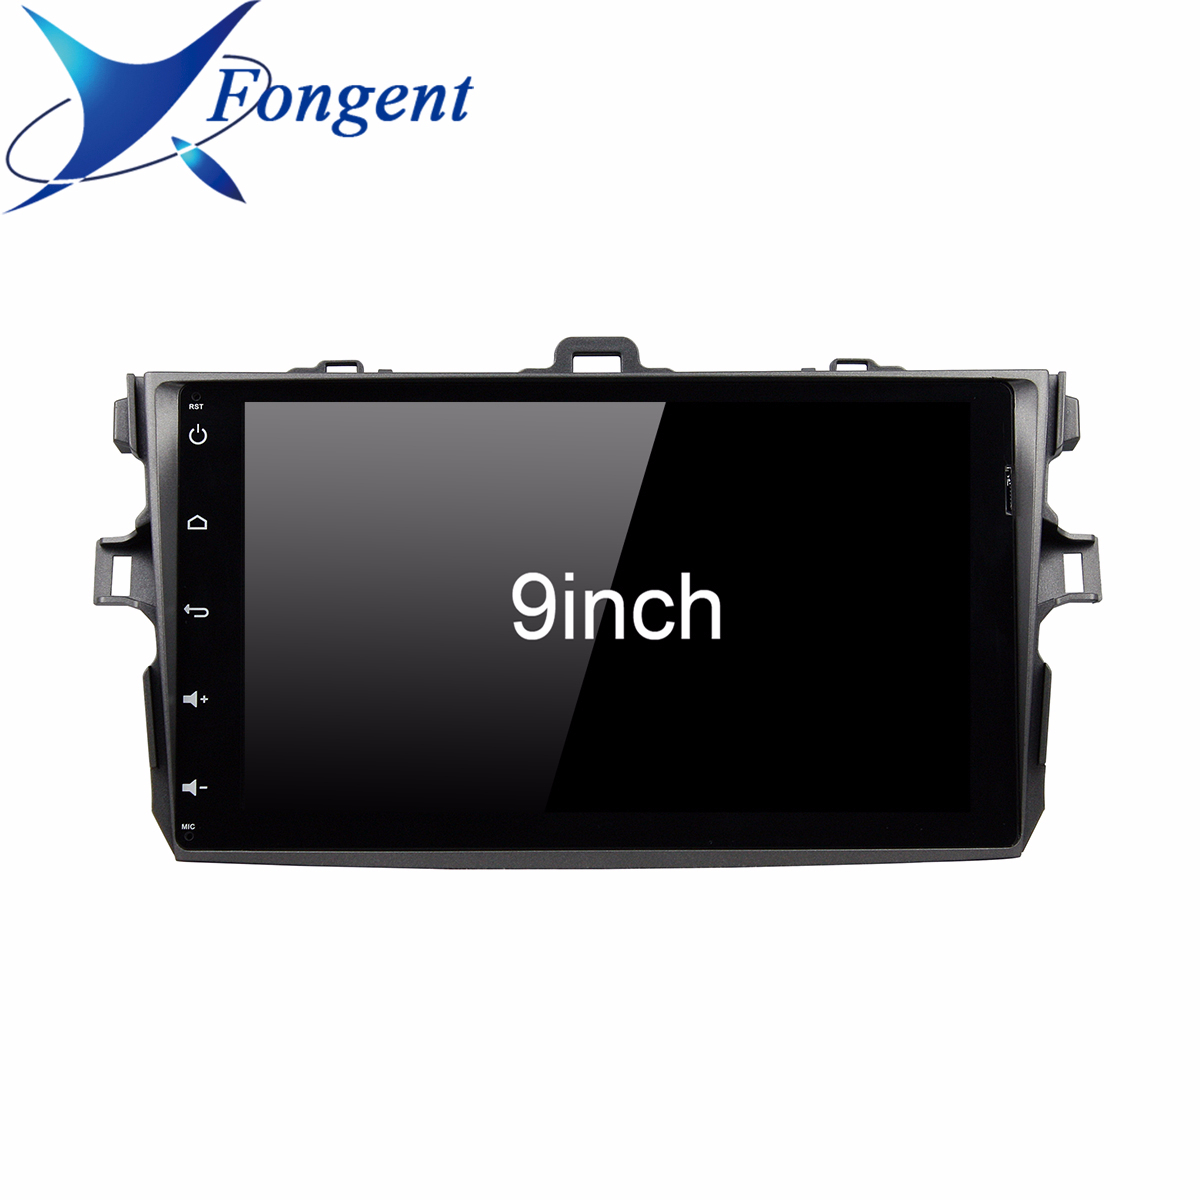 Für Toyota Corolla E140/150 2008 2009 2010 2011 2012 <font><b>2013</b></font> Auto Android 9.0 Radio Multimedia Player Stereo GPS Navigation <font><b>2</b></font> <font><b>din</b></font> PC image